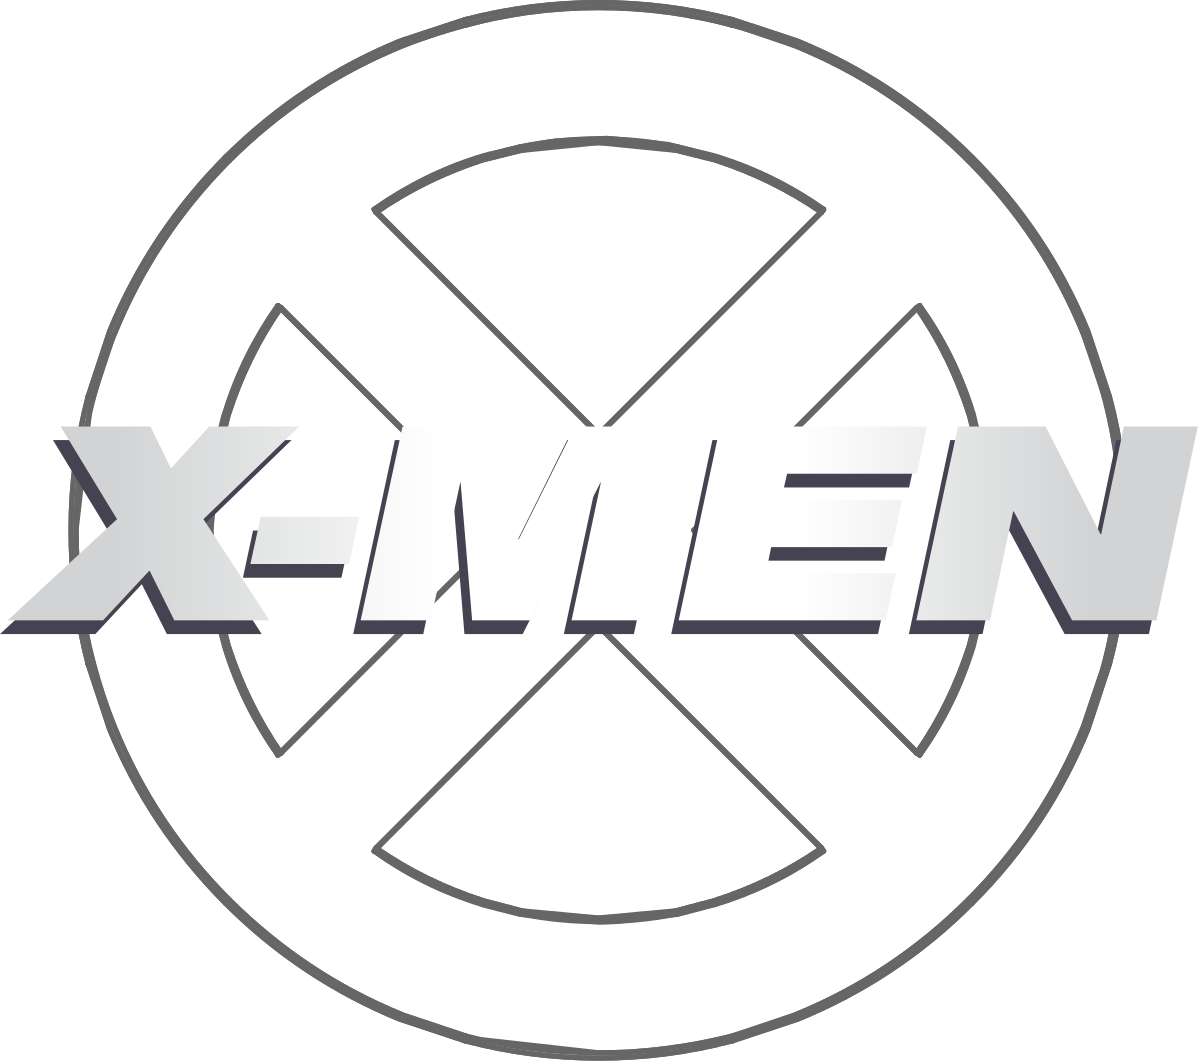 Xmen drawing black and white. X men days of